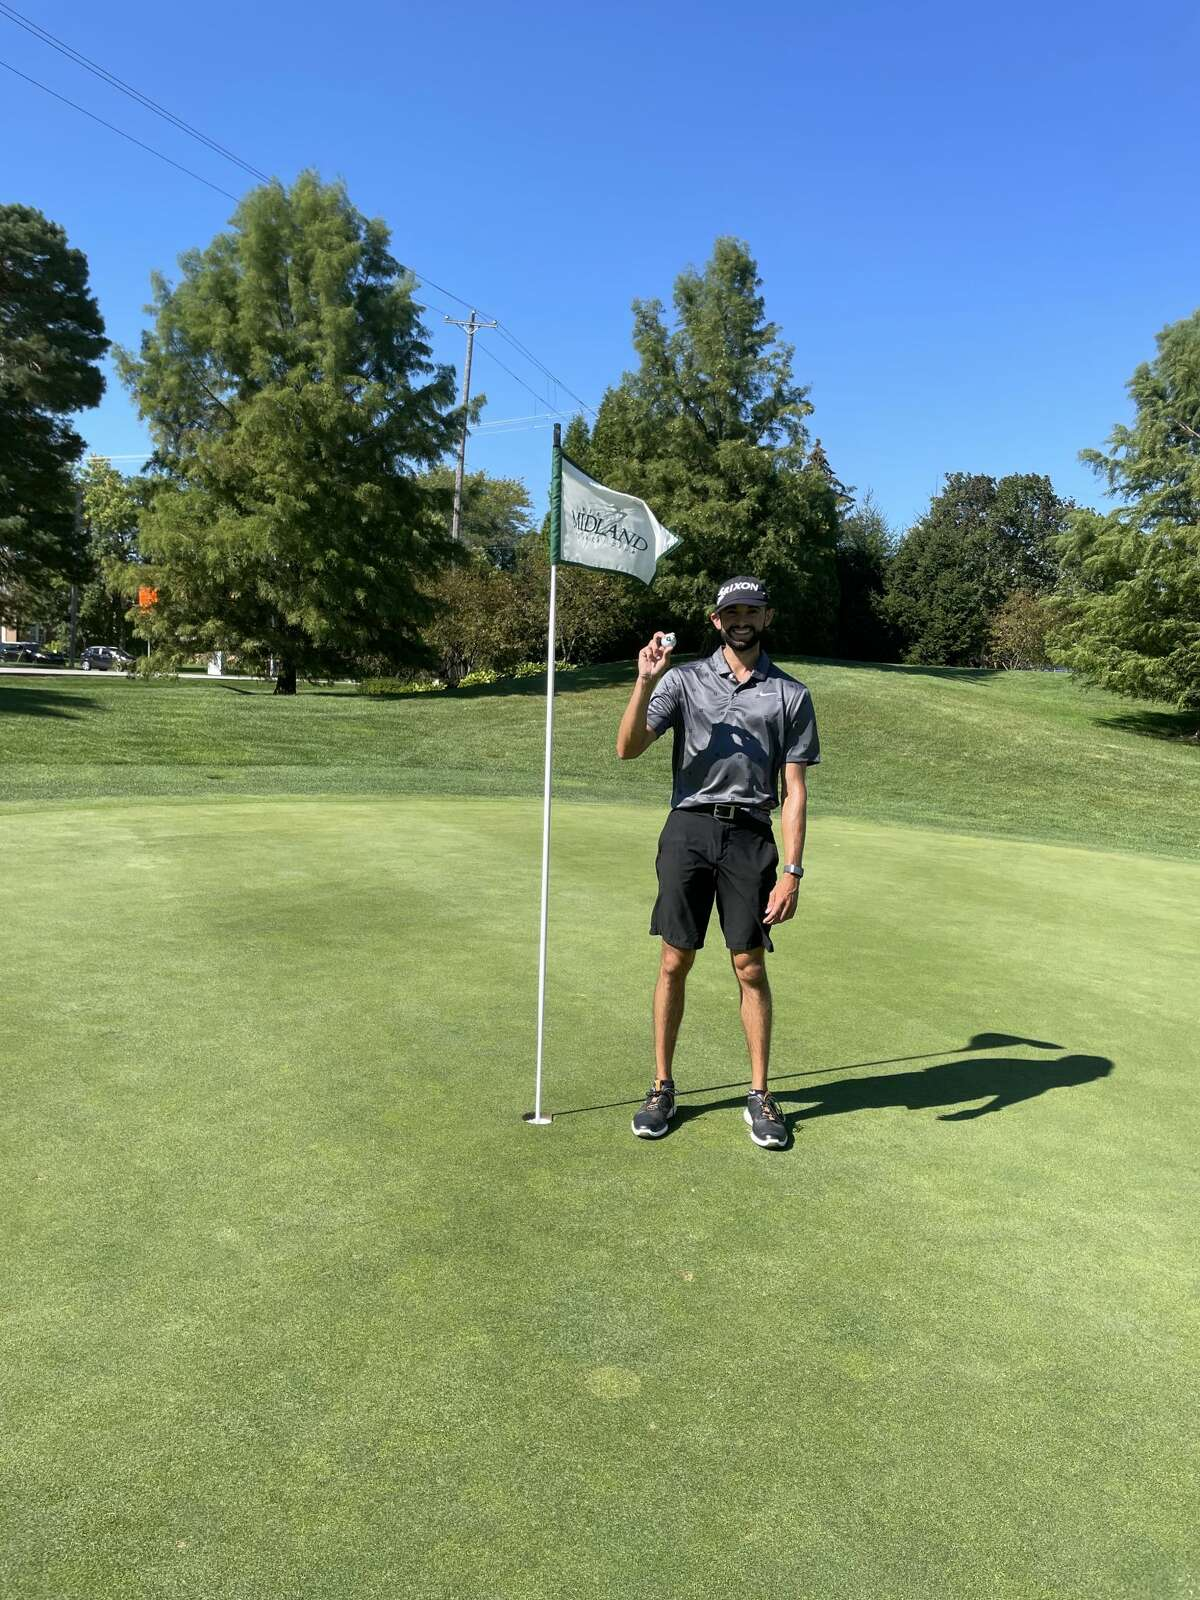 Midland native Cam Lippoldt poses with his hole-in-one golf ball after making an improbable ace on the par-4 fifth hole at Midland Country Club on Sept. 17 (Photo provided).